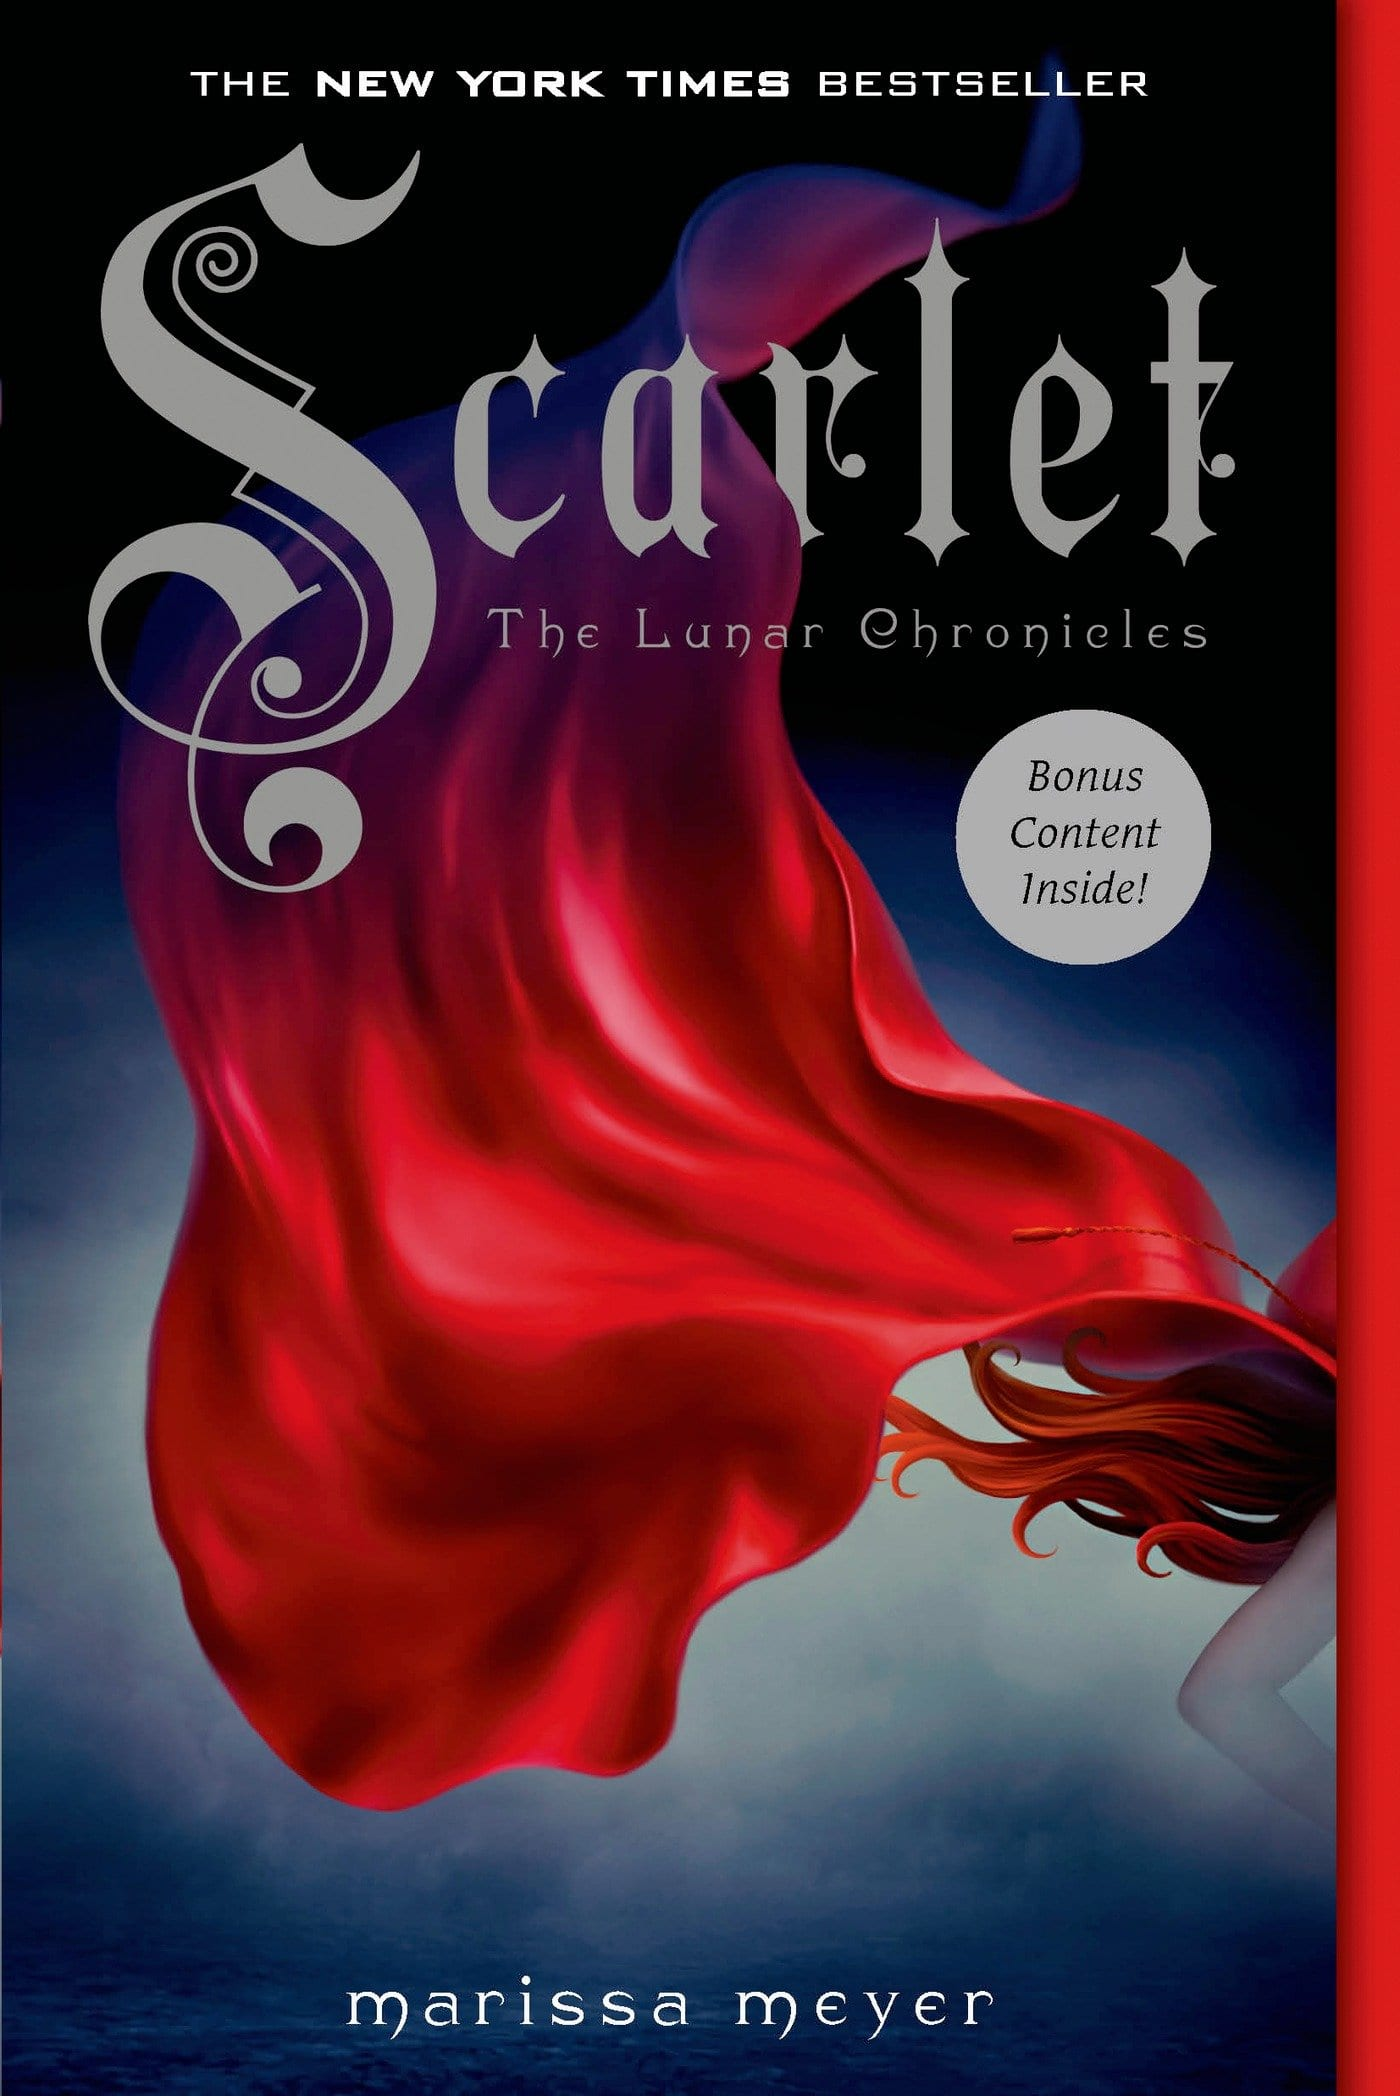 Scarlet (Set of 10)